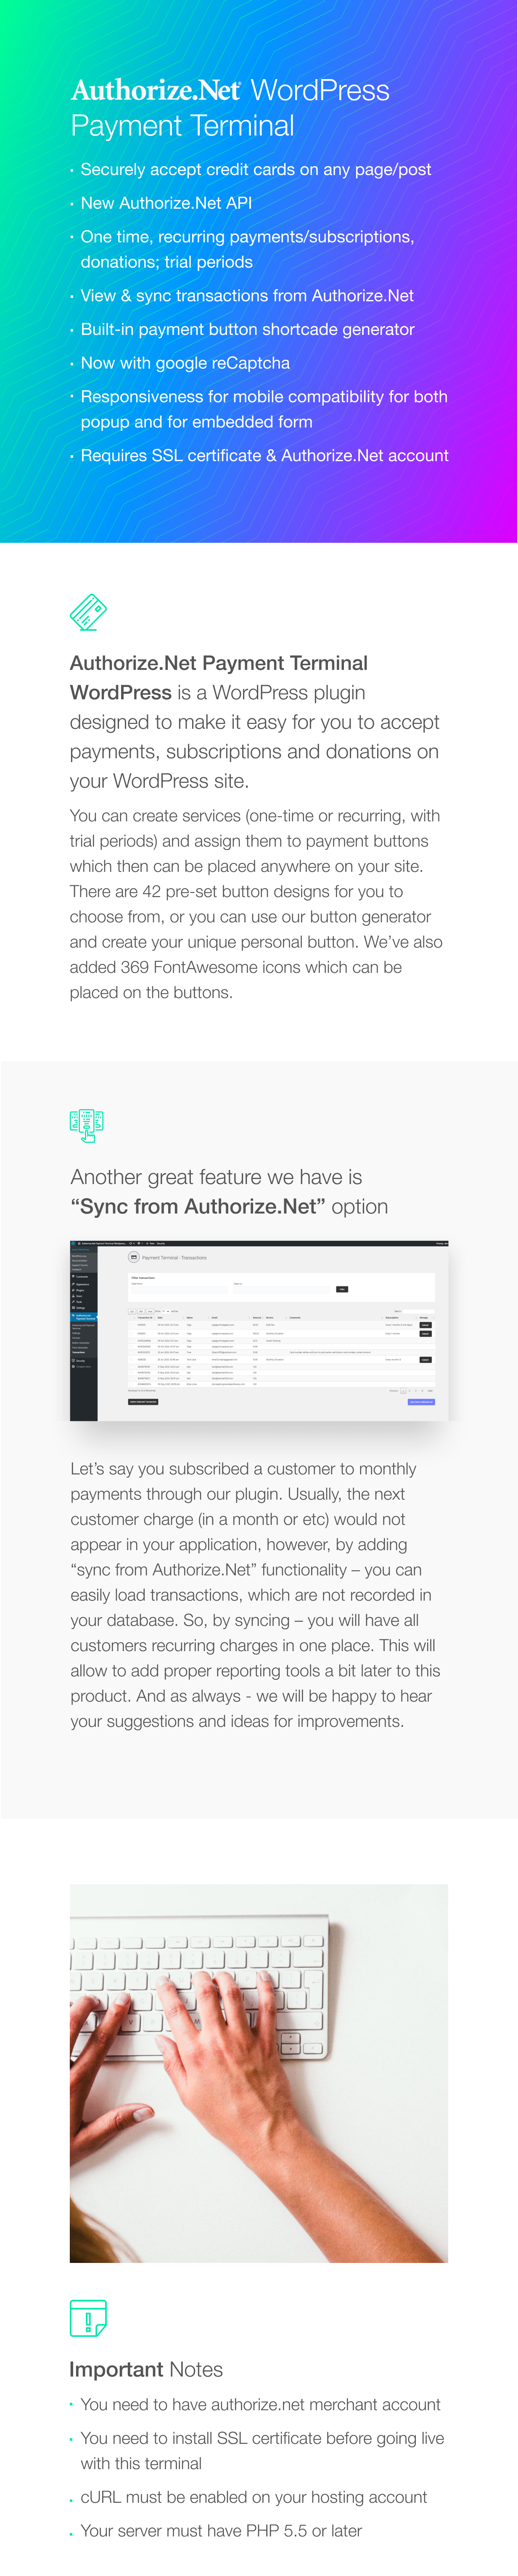 Authorize.Net Payment Terminal WordPress - 1